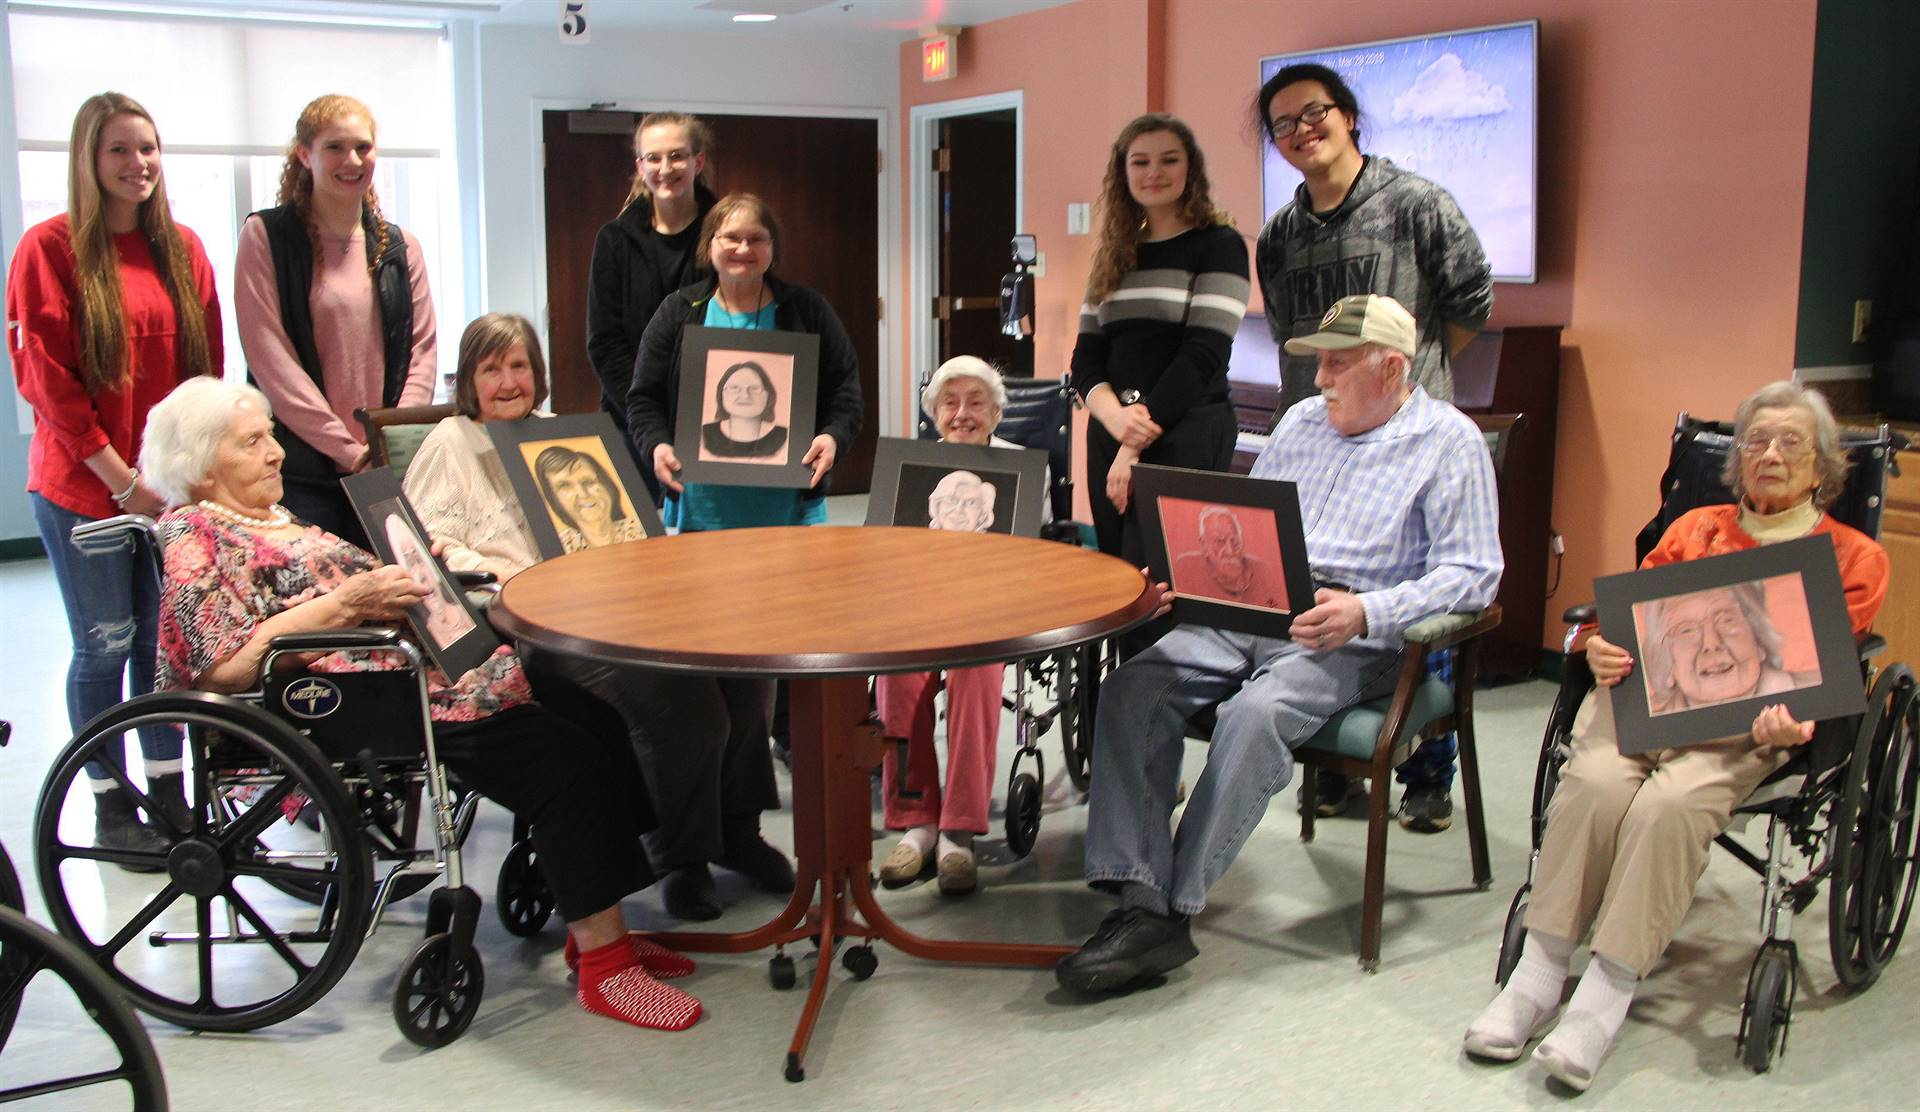 students and residents with drawings at table